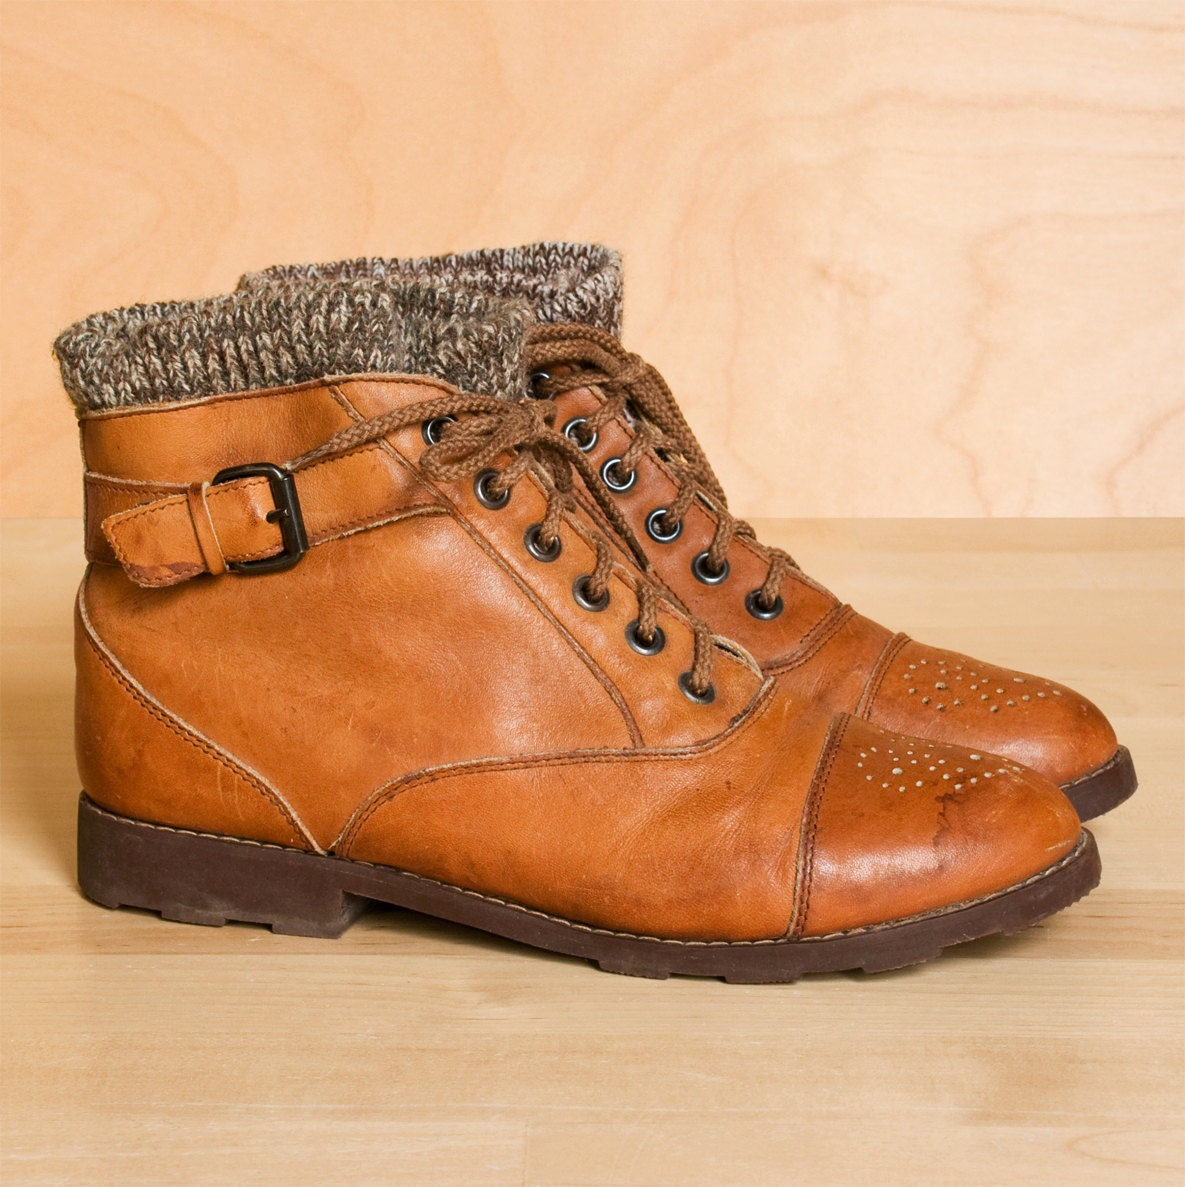 ankle boots 6 5 5 vintage sweater cuff leather by